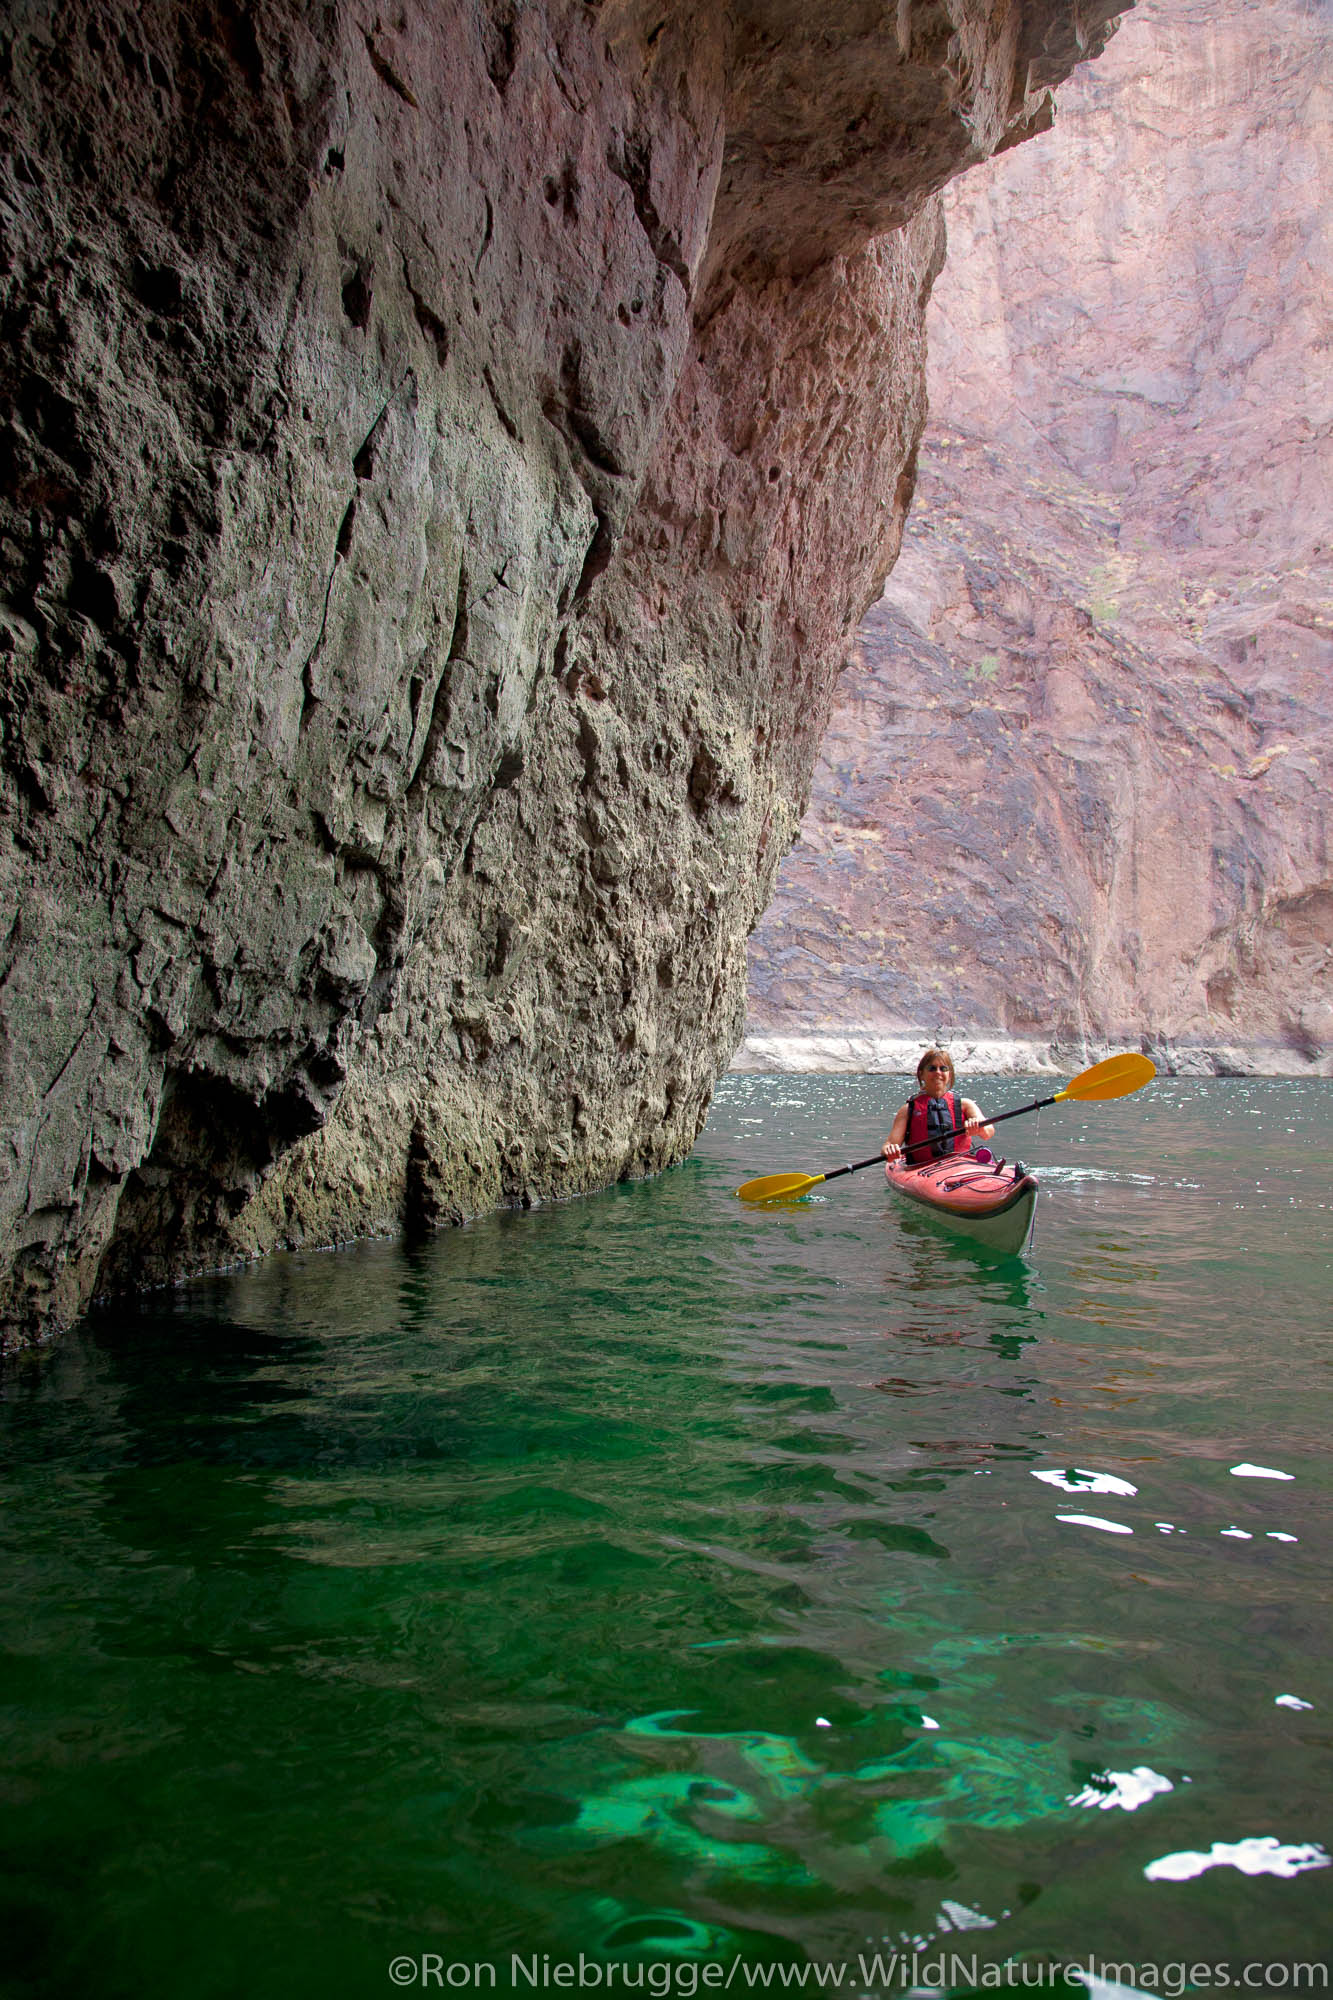 Kayaking in Emerald Cave on the Colorado River, Mojave Desert. (model released)